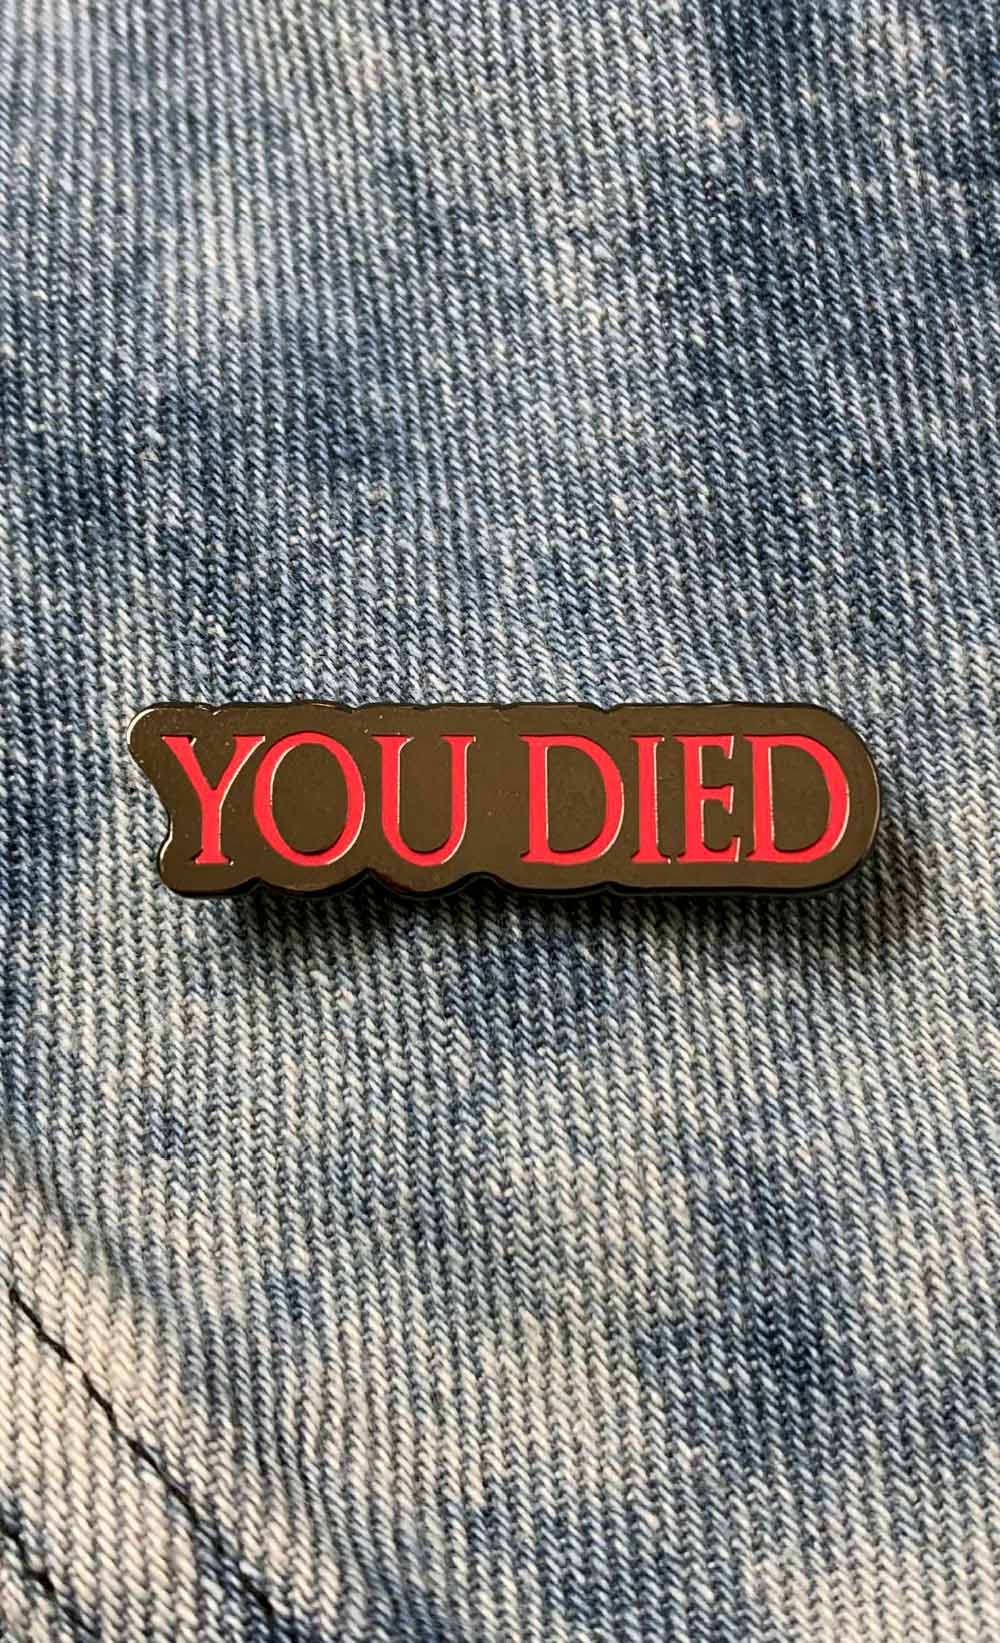 You Died - Insert Coin Clothing